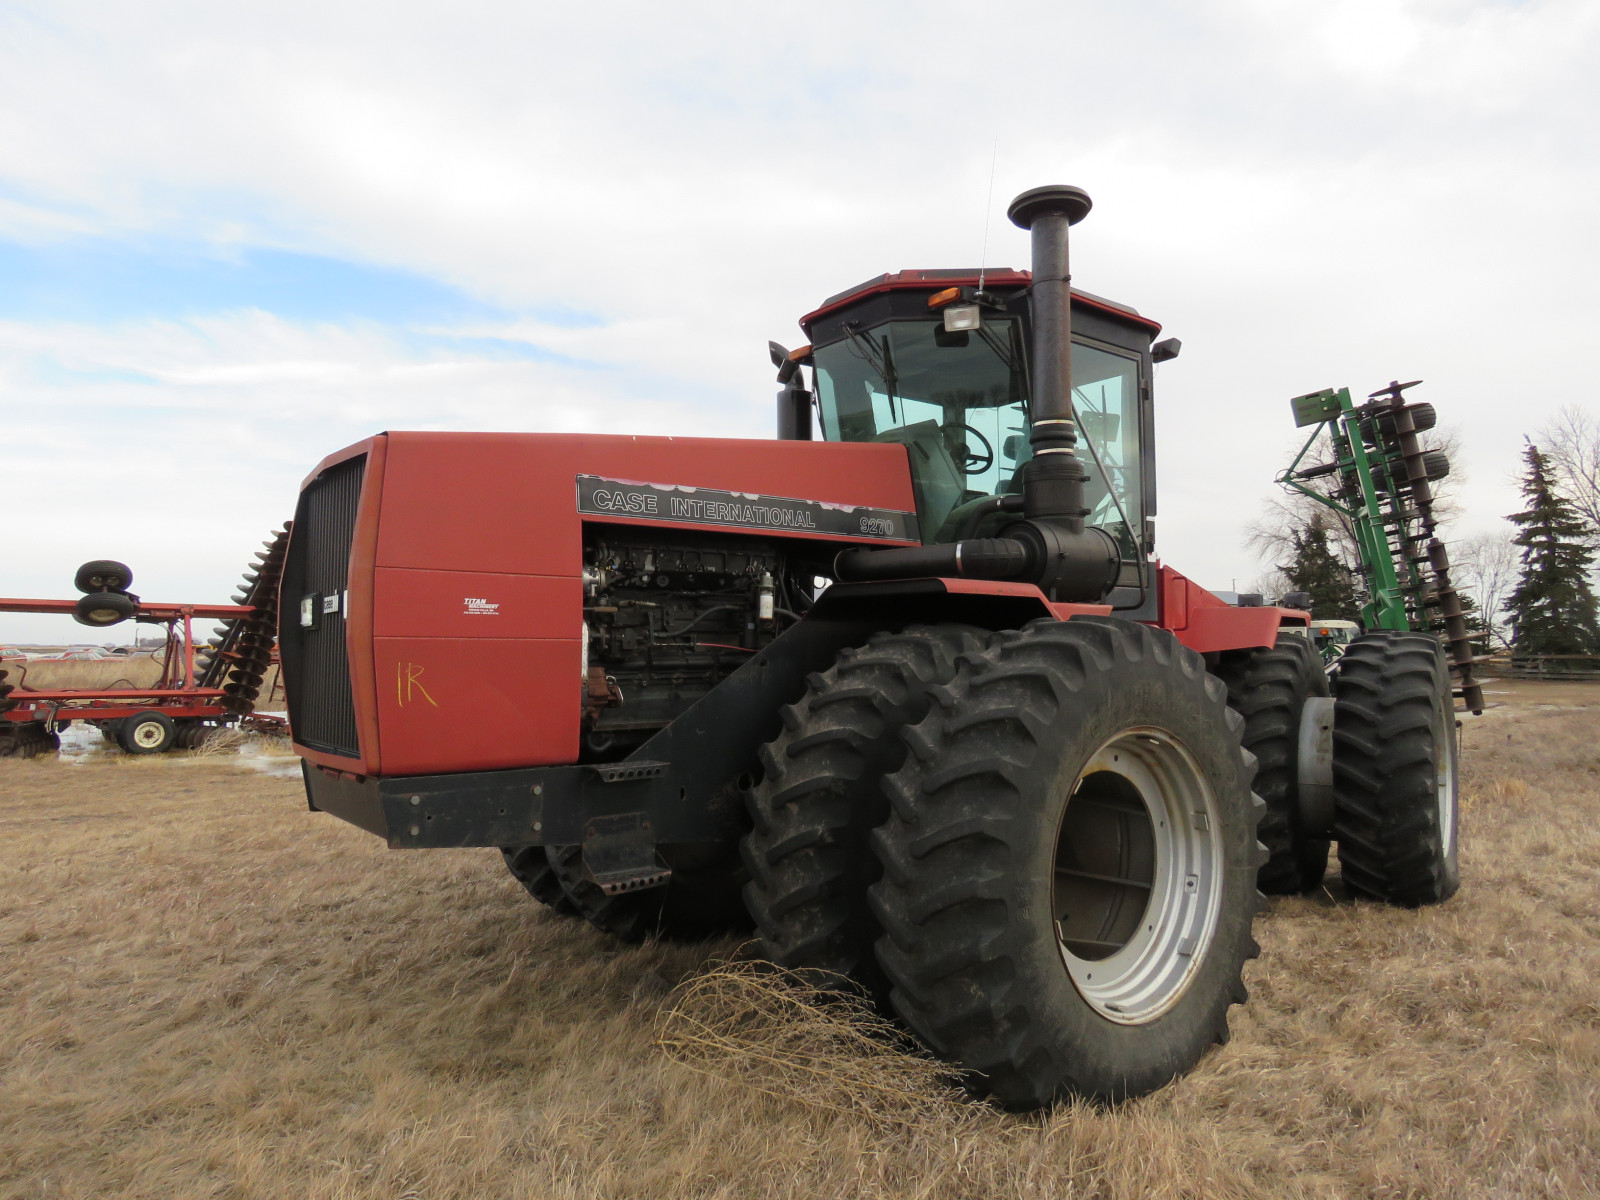 CASE-IH 1991 9270 4WD Tractor JCB0026904 - Image 1